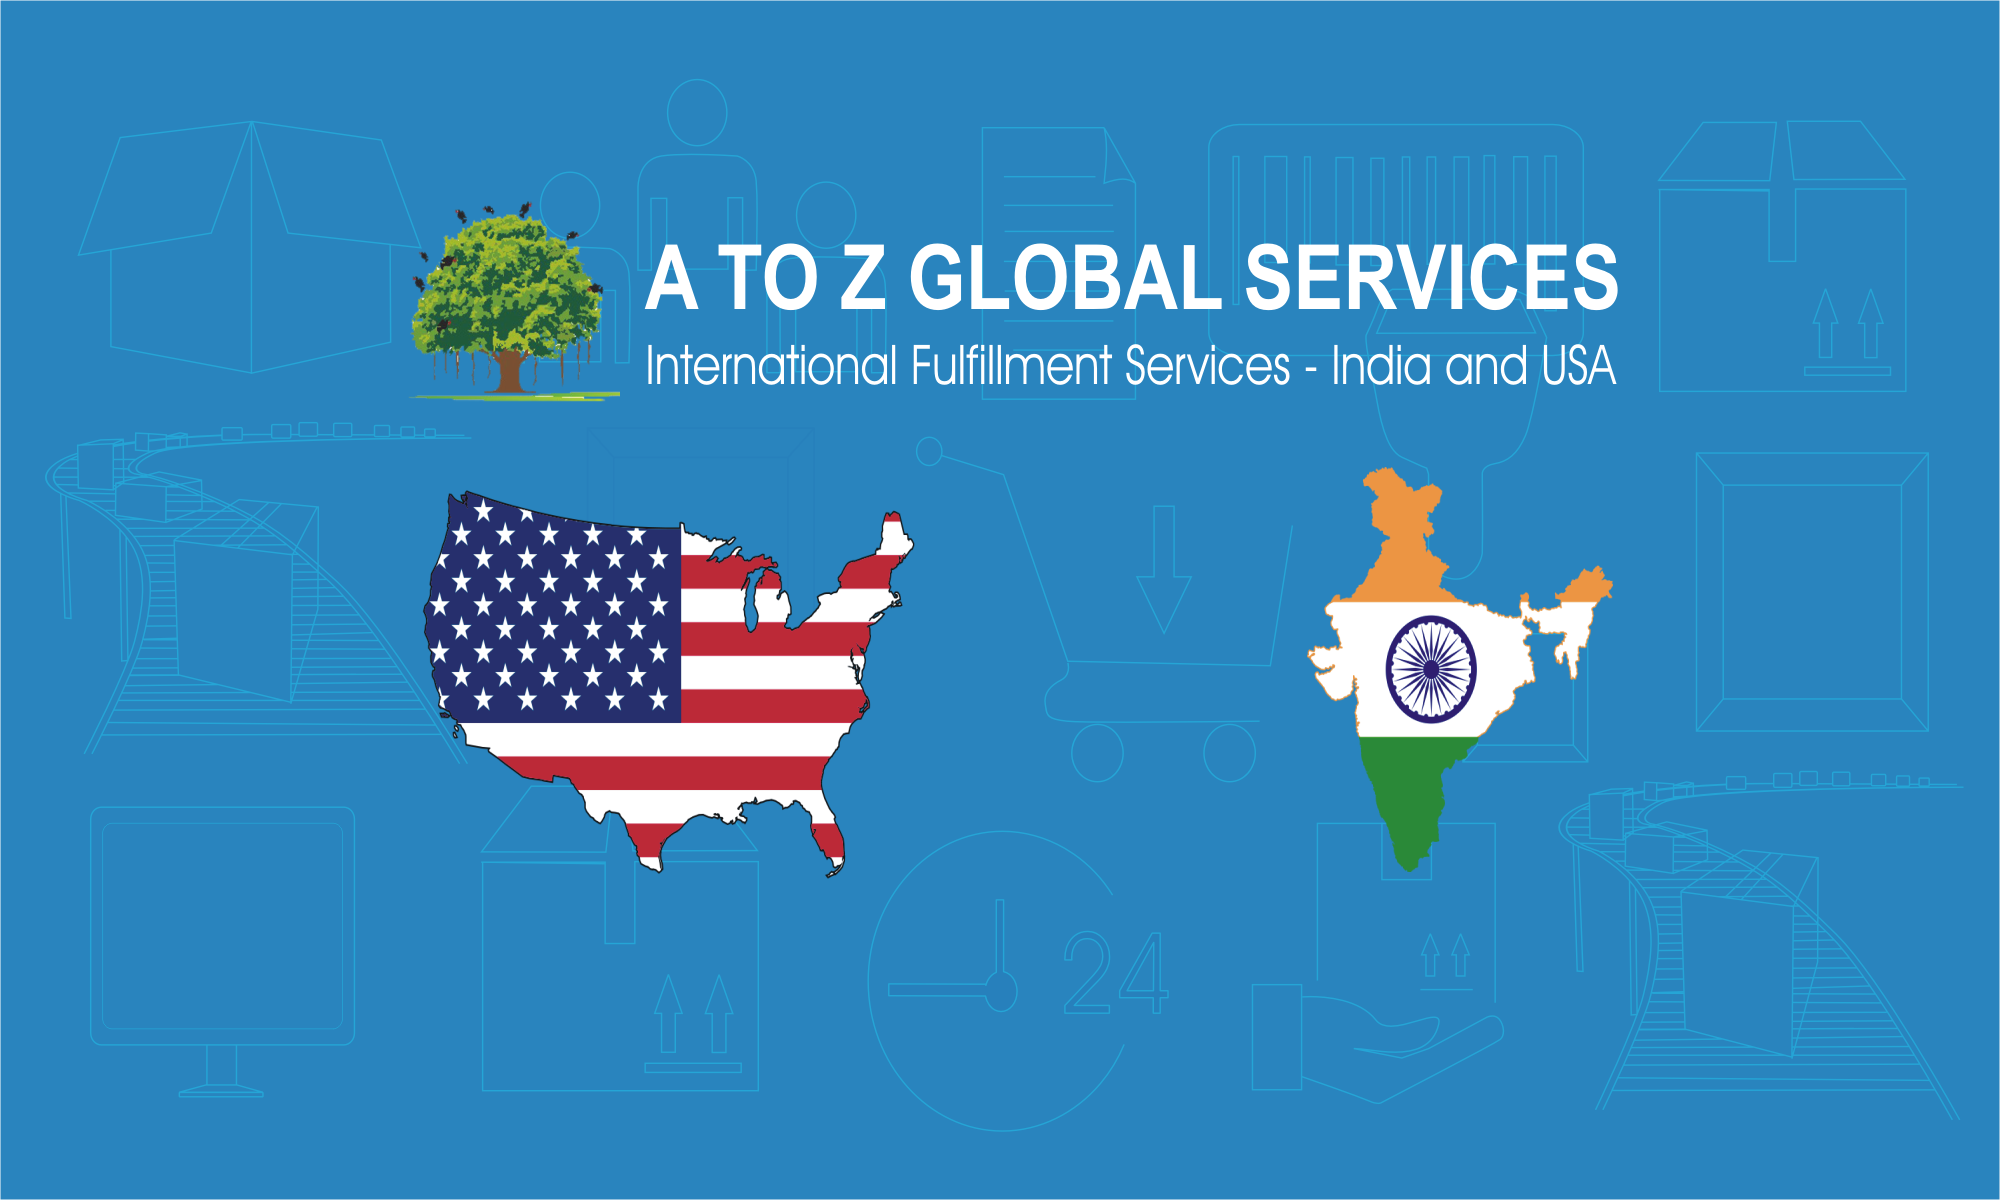 A to Z Global Services